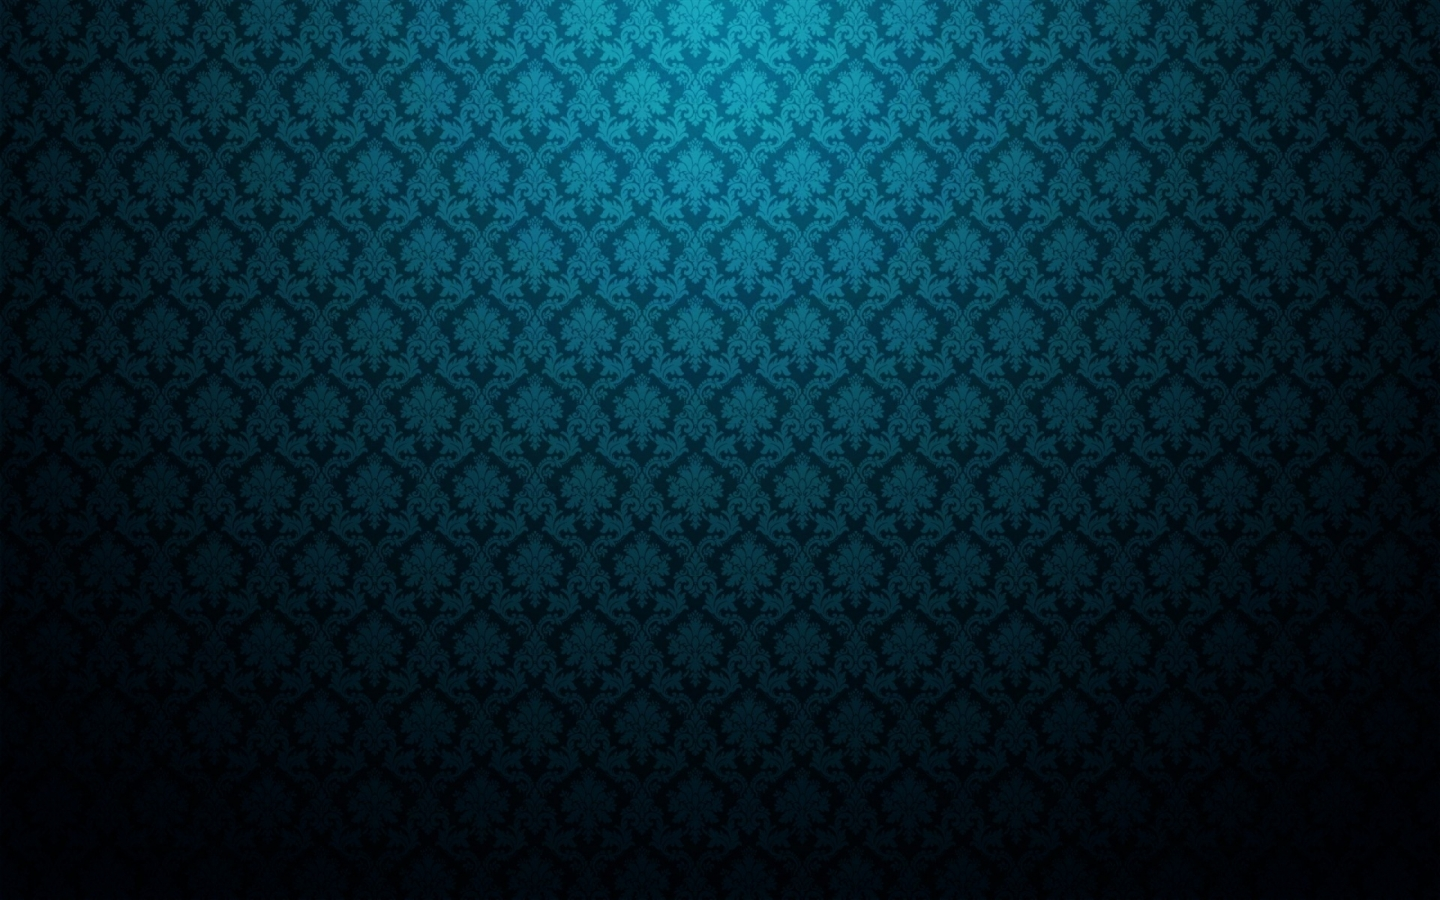 download blue vintage texture wallpaper in textures wallpapers with 1476